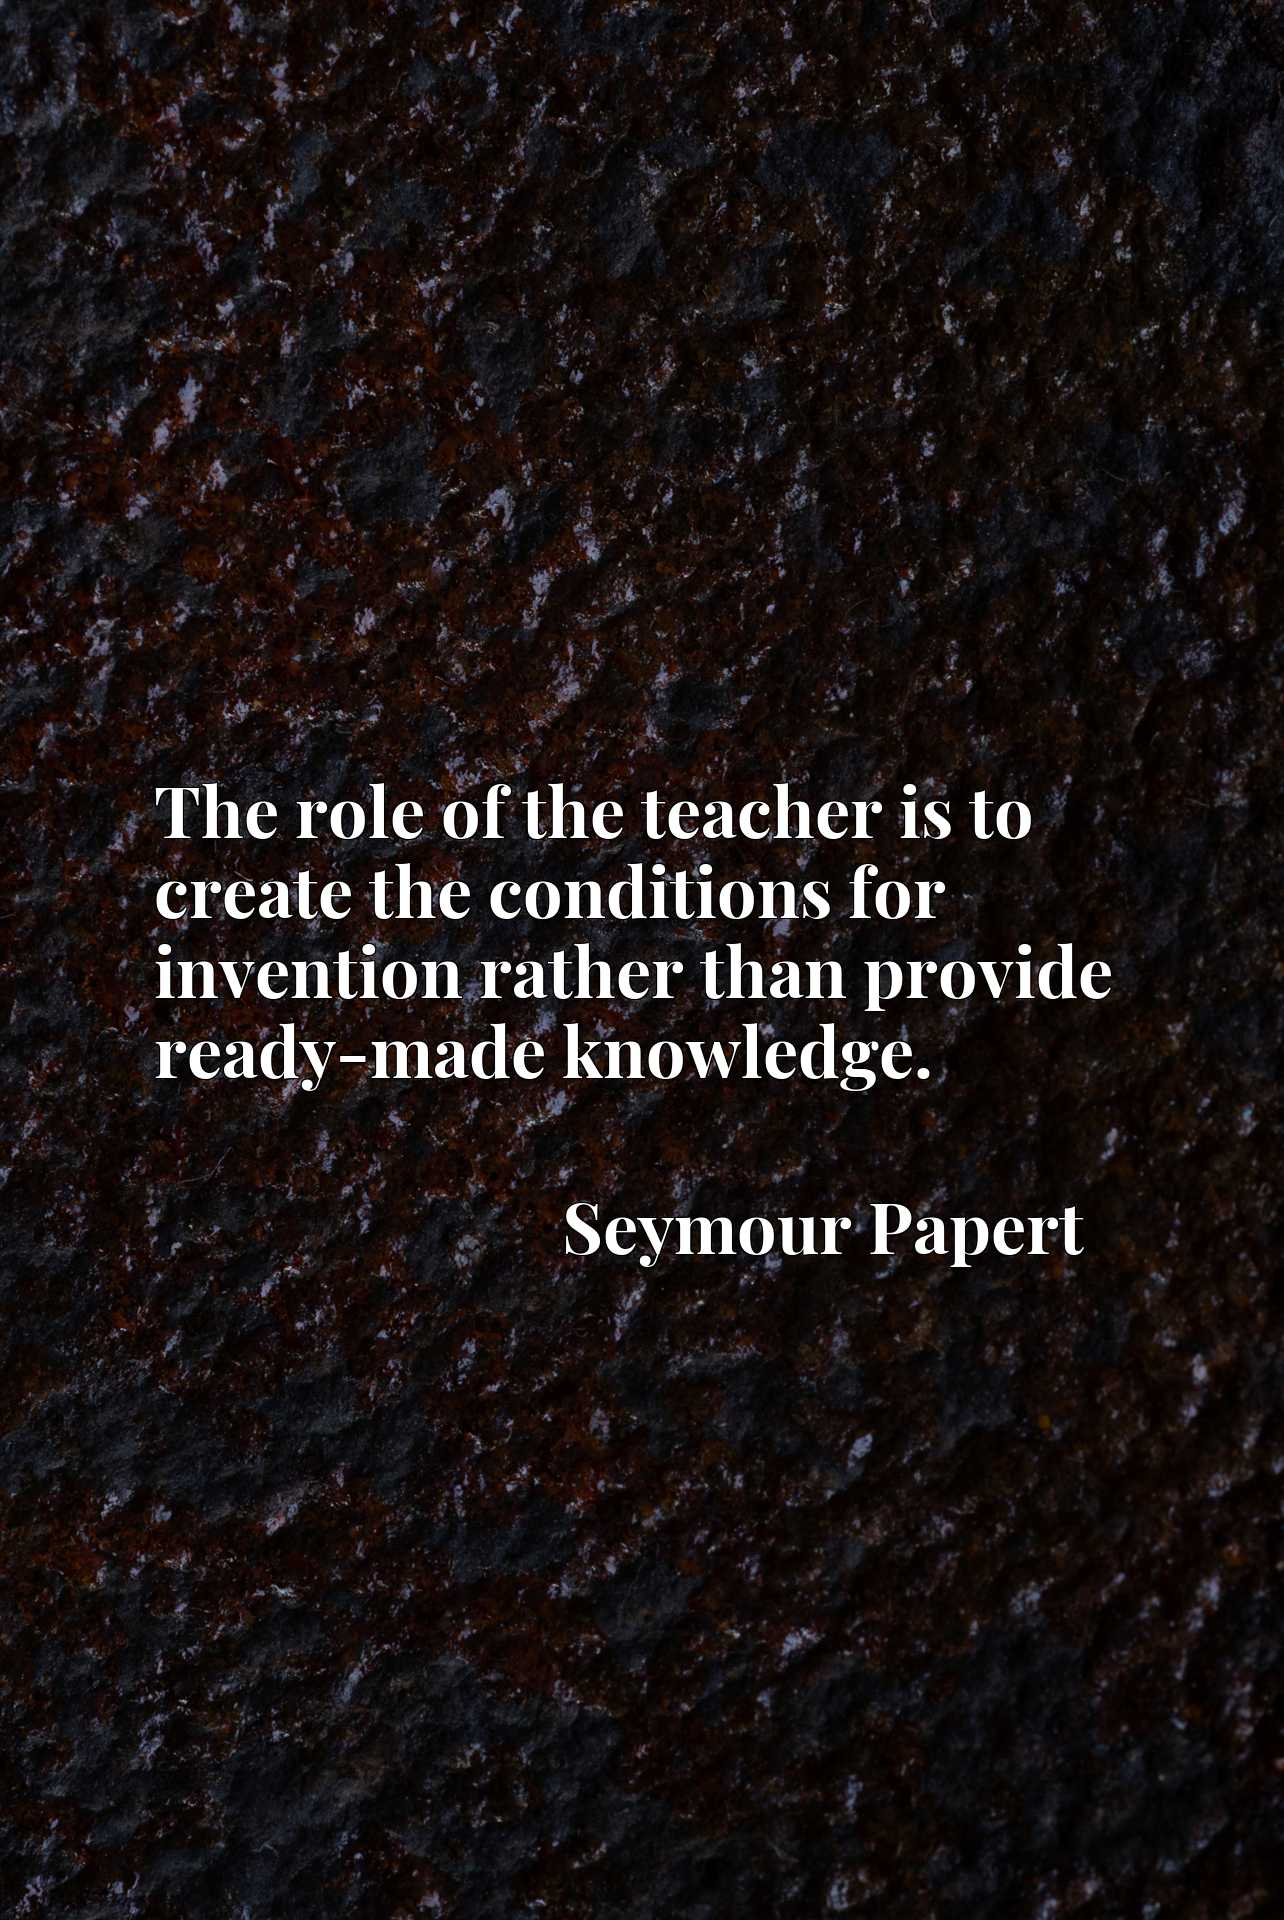 Quote Picture :The role of the teacher is to create the conditions for invention rather than provide ready-made knowledge.